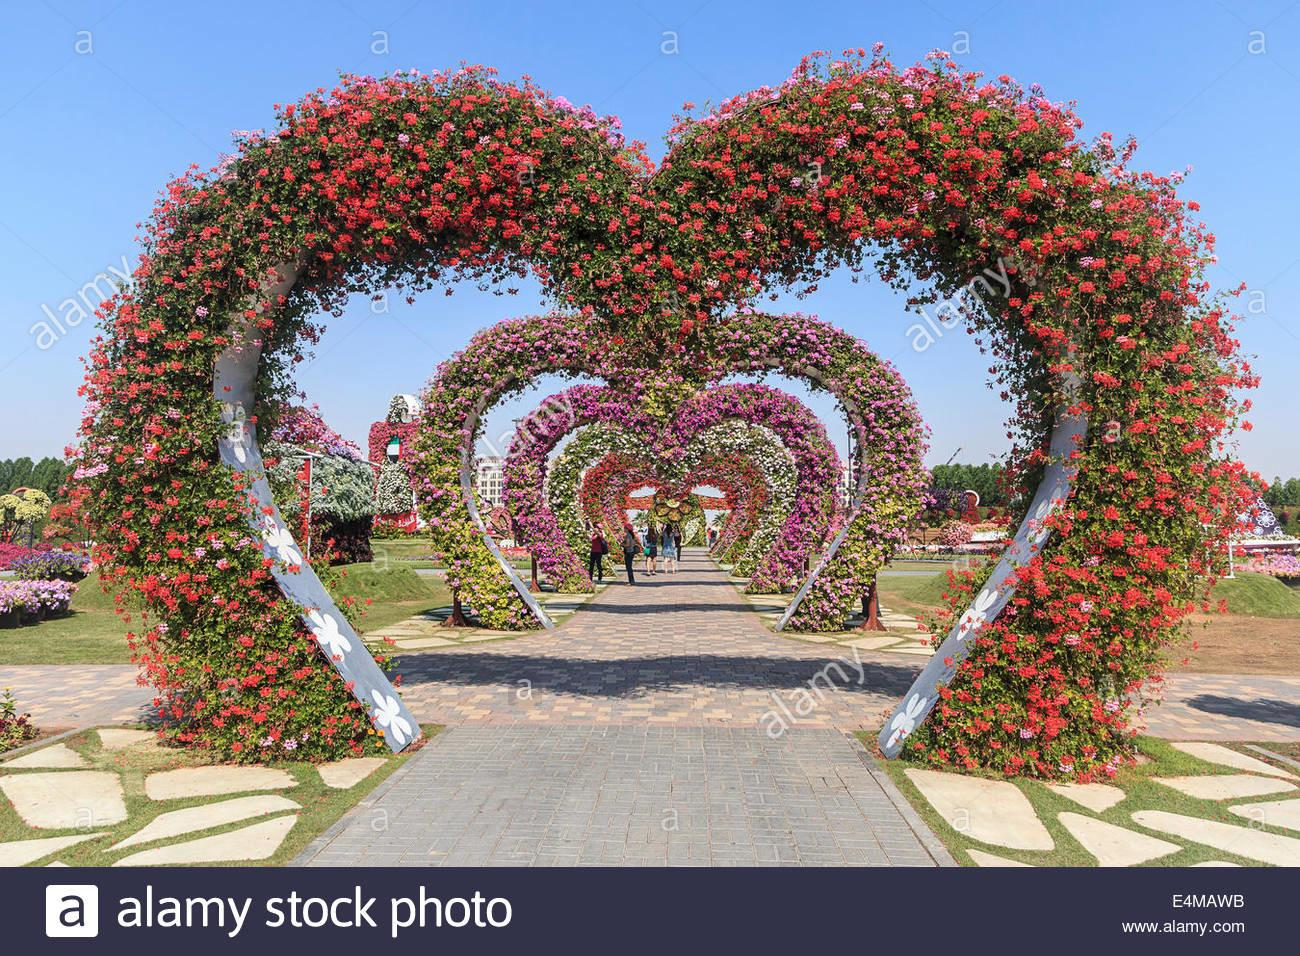 Heart Shaped Arches Covered Flowers Dubai Miracle